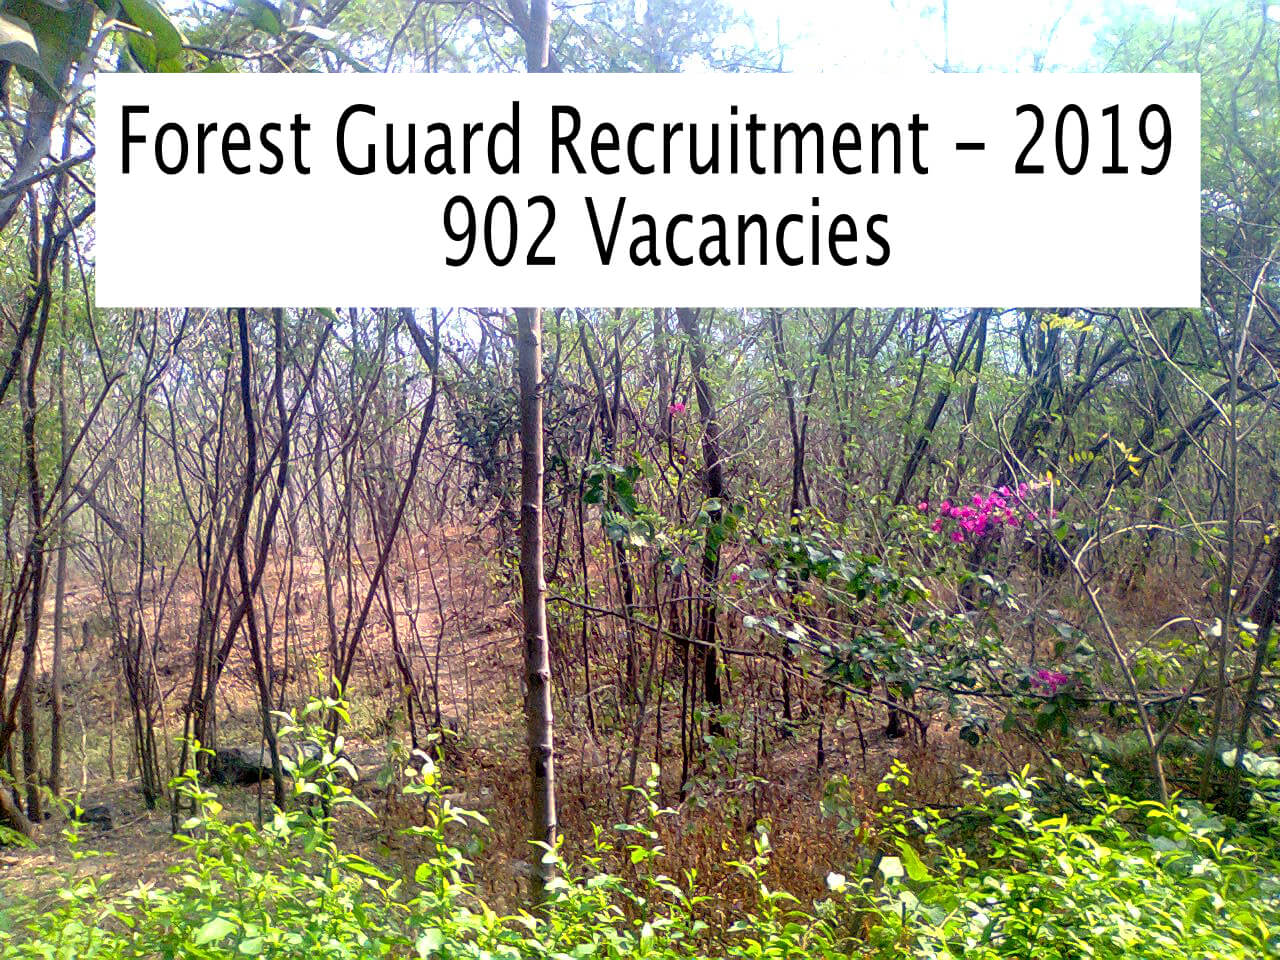 Forest Guard Recruitment 2019 - 902 Openings